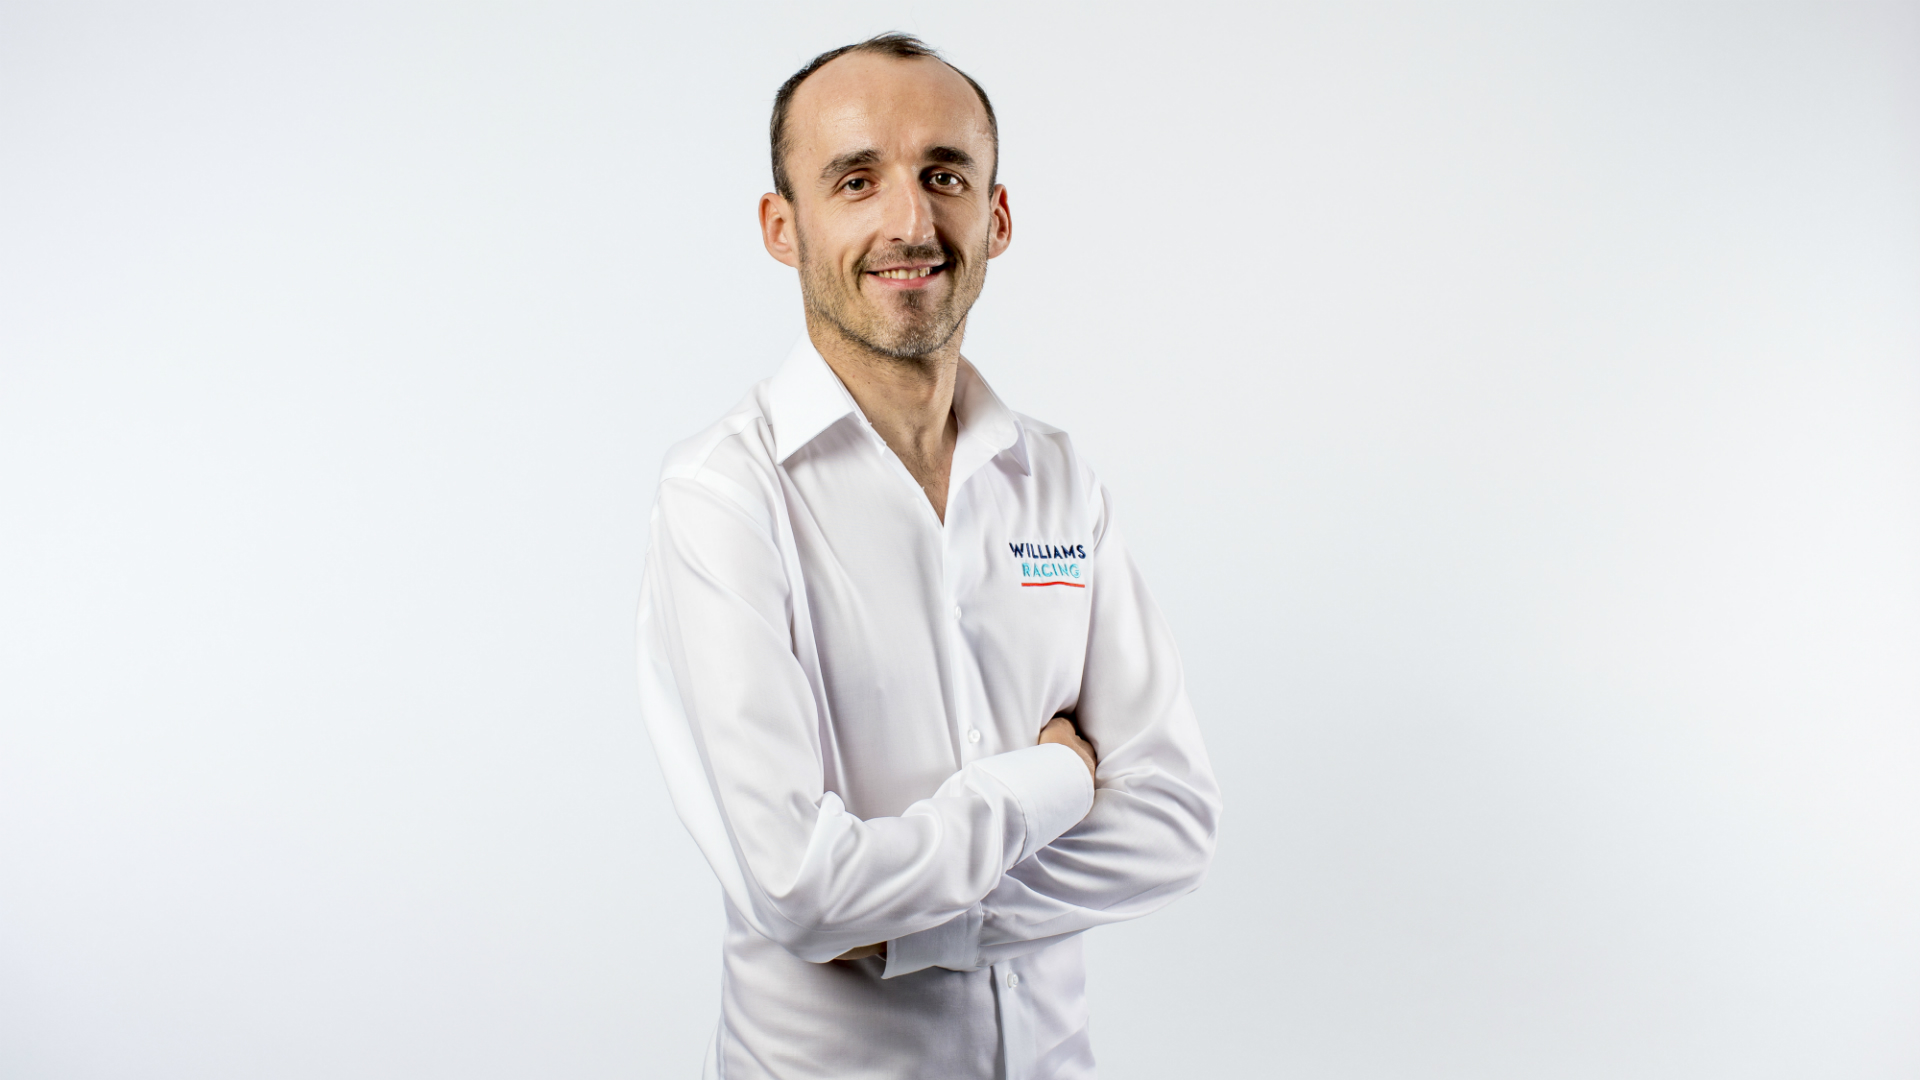 Robert Kubica is a man who made himself